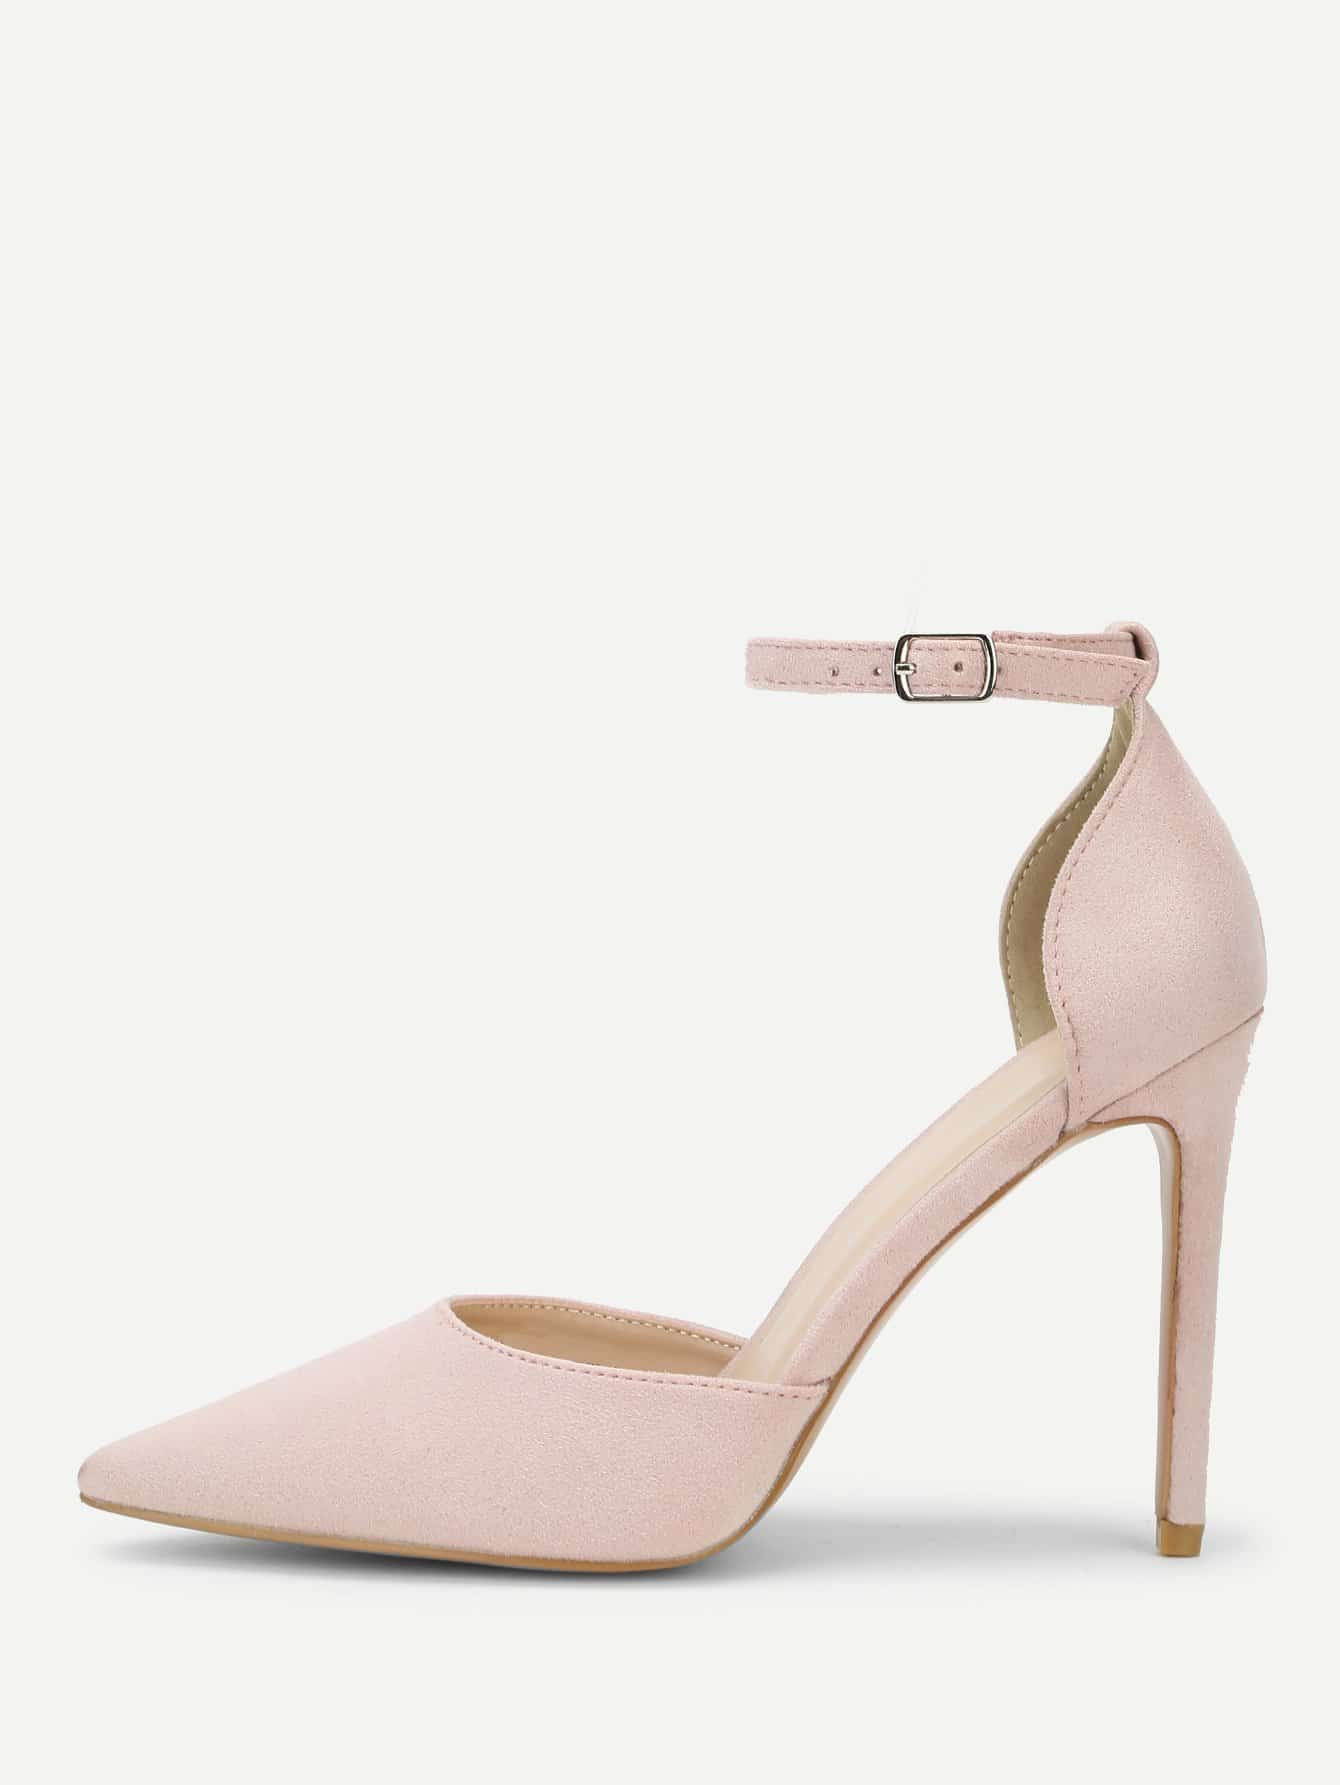 Pointed Toe Ankle Strap Stiletto Heels mix color causal wedge high heels women sandals platform ladies shoes open toe ankle strap womens heels size 11 women heels